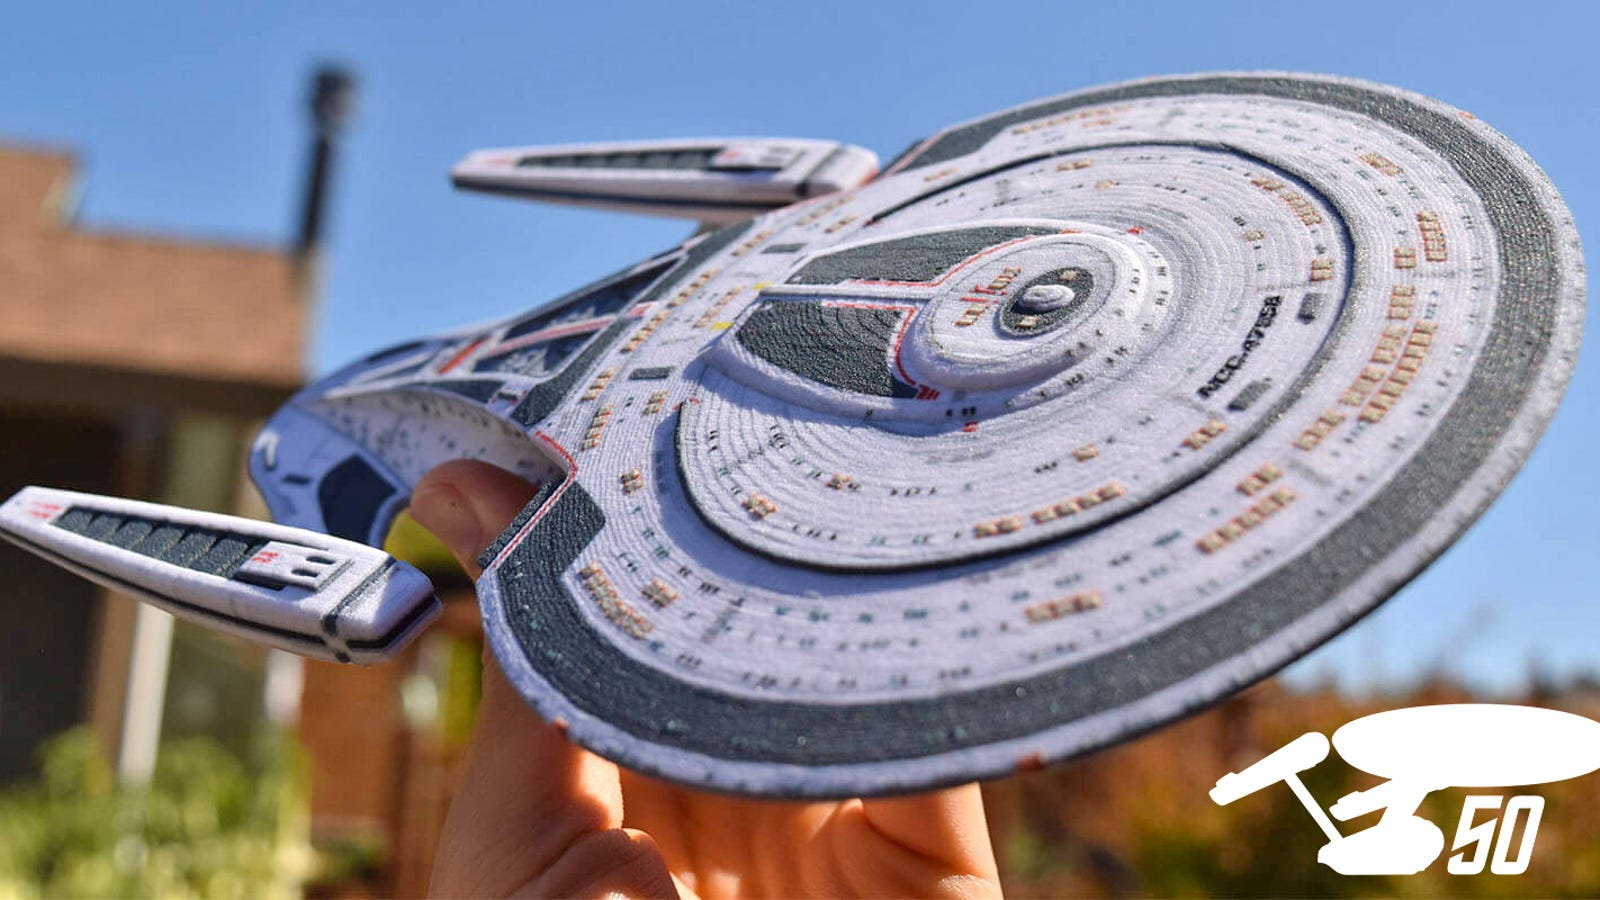 Build Your Own Starfleet With These Customized 3D-Printed ...